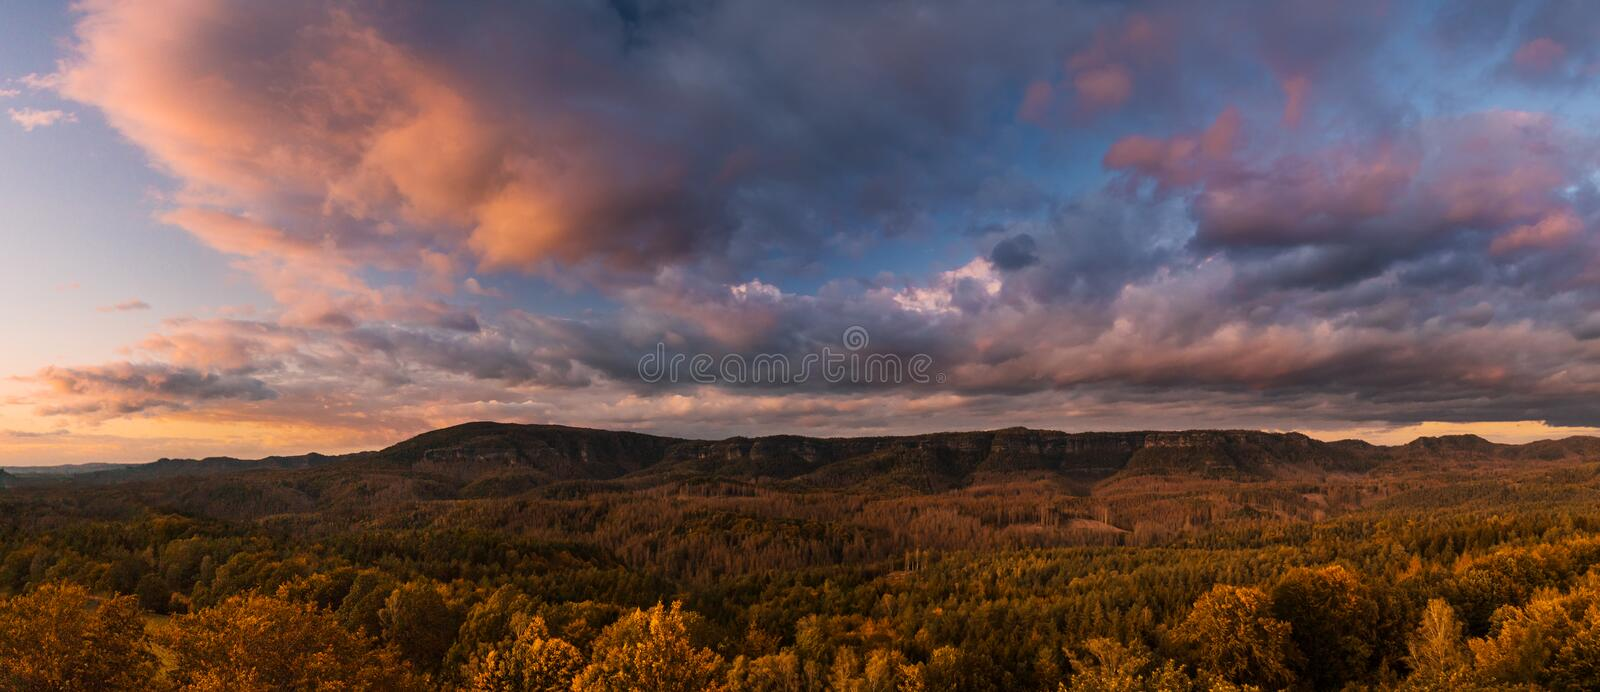 Autumn landscape at sunset - mountains, forests and beautiful clouds illuminated by the setting sun royalty free stock image